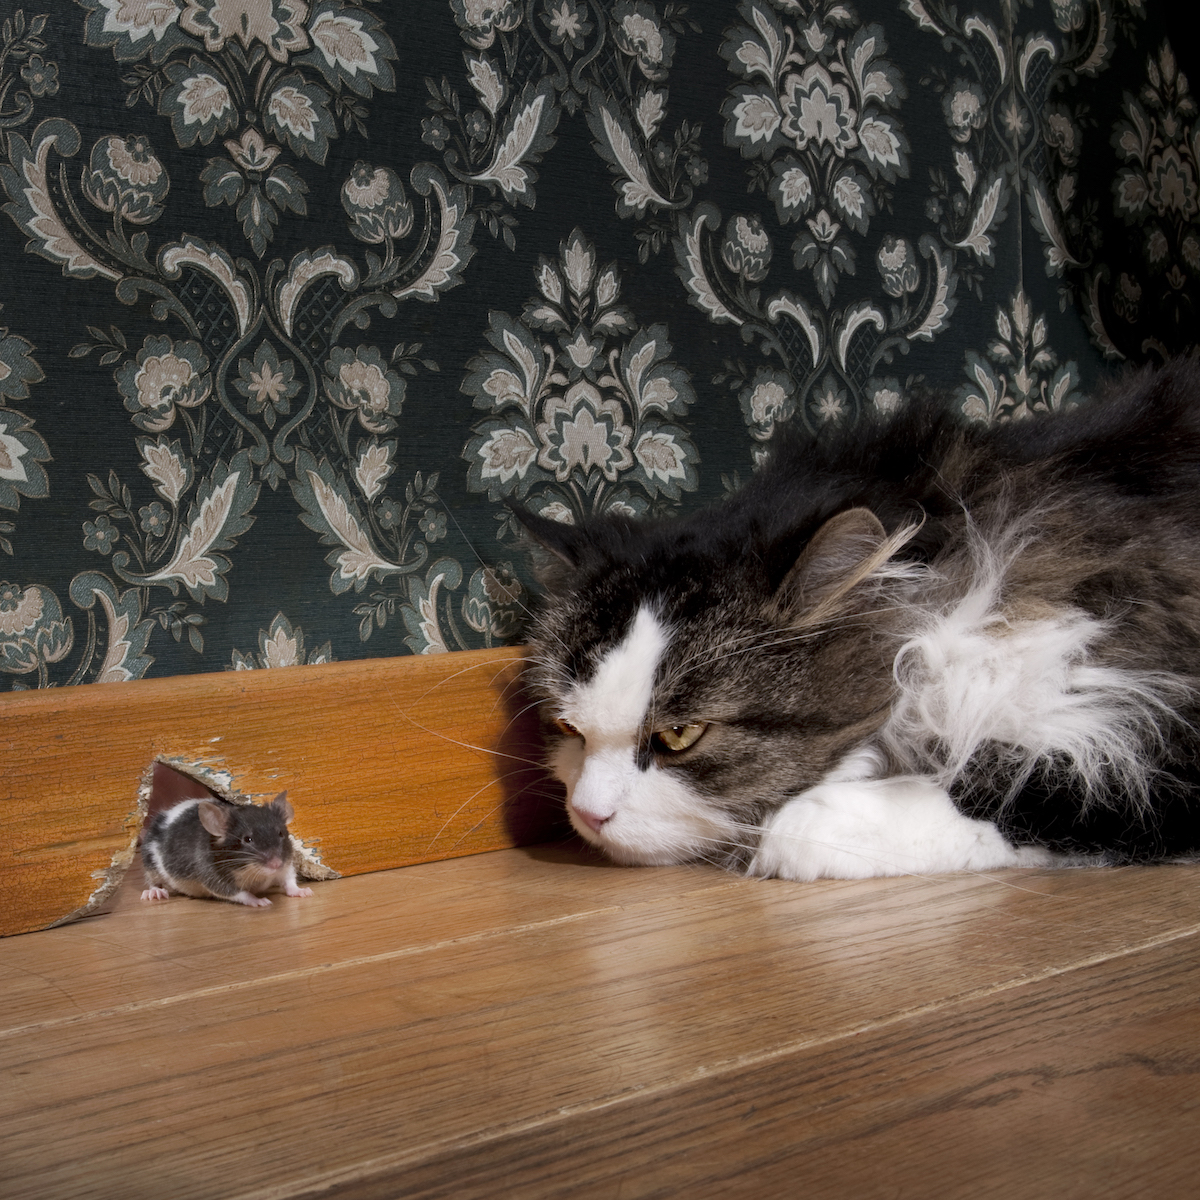 cat-staring-at-a-mouse-coming-out-of-her-hole-P8WGZJY.jpg